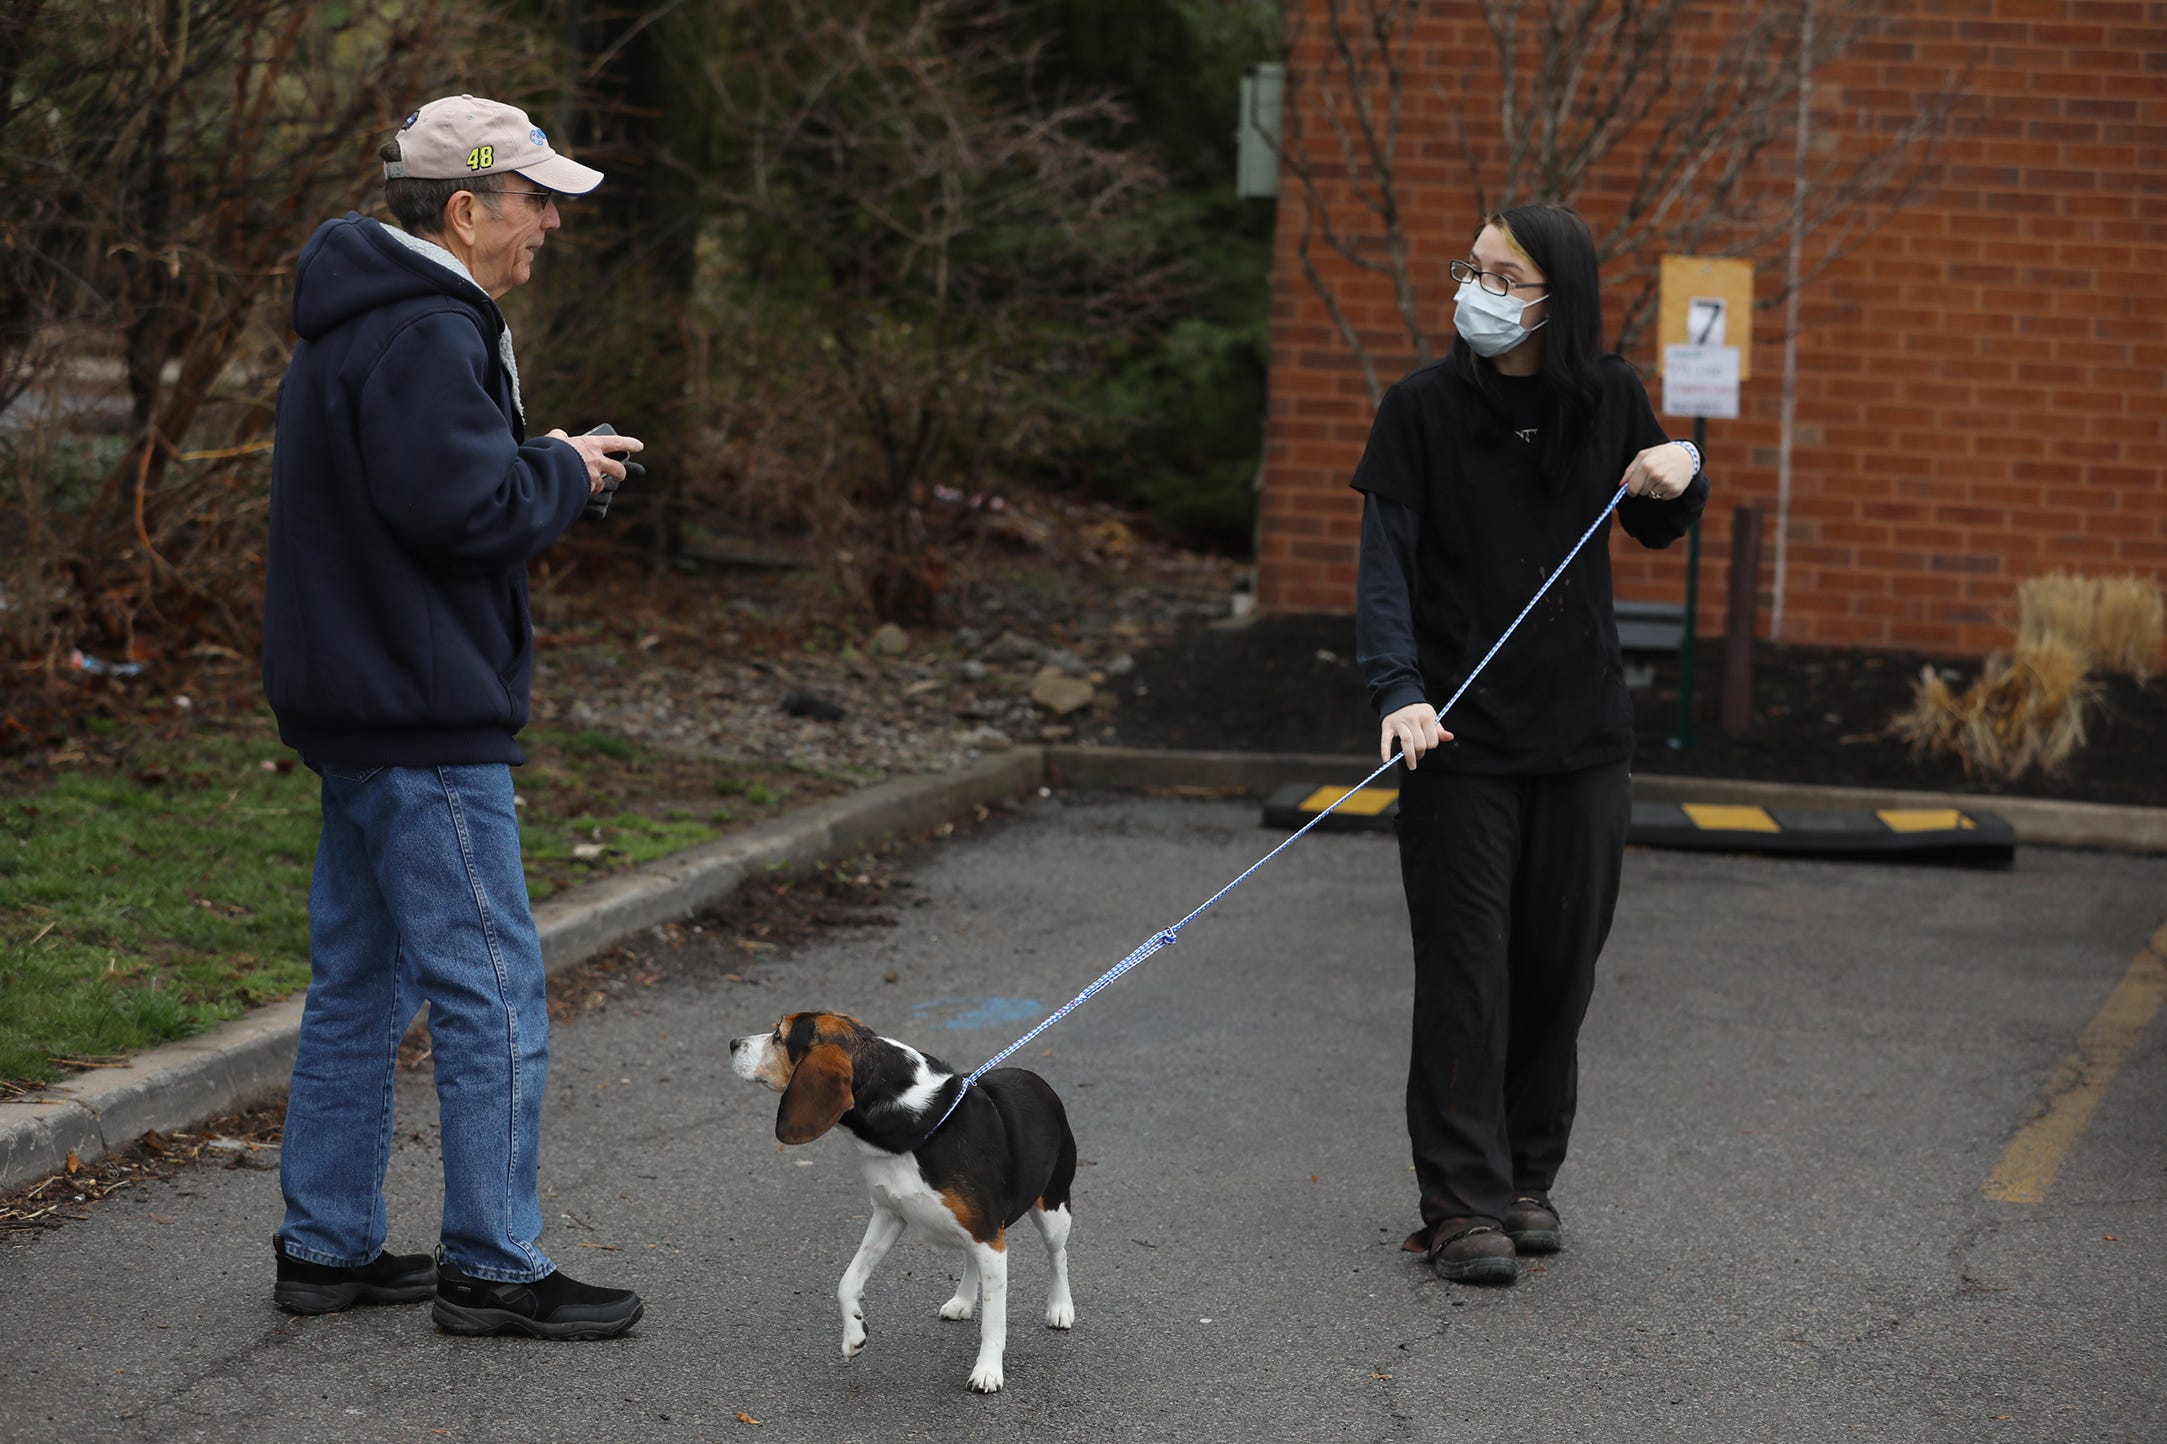 rochester veterinary offices switch to curbside drop